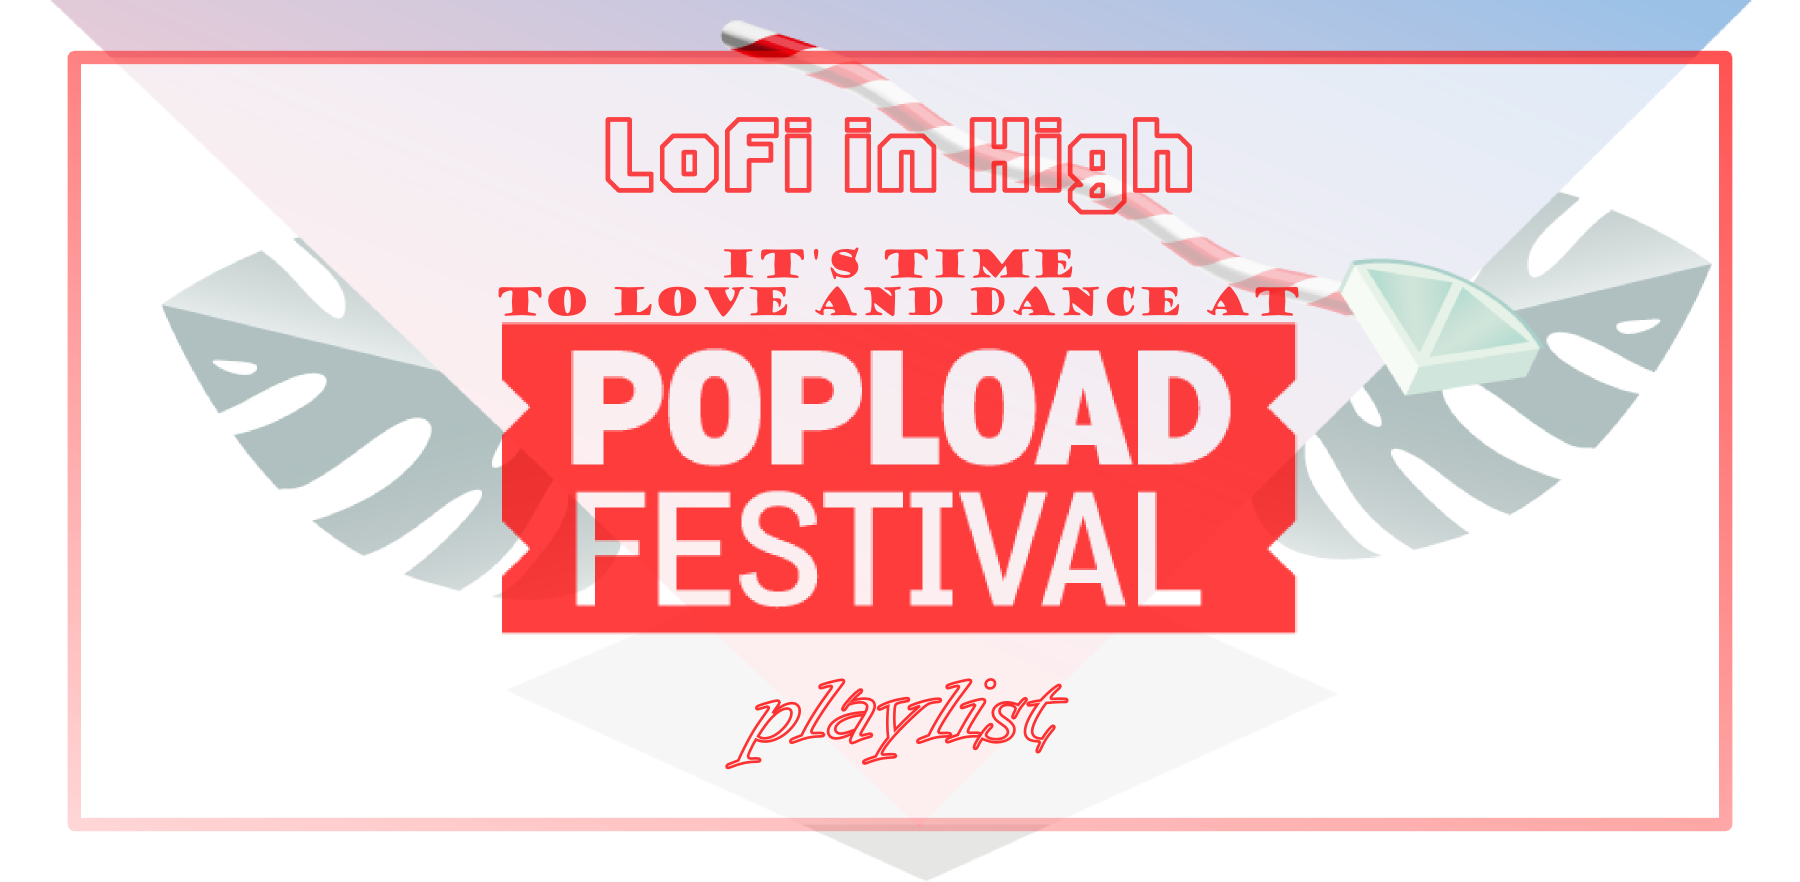 LoFi in High - Popload Festival Playlist